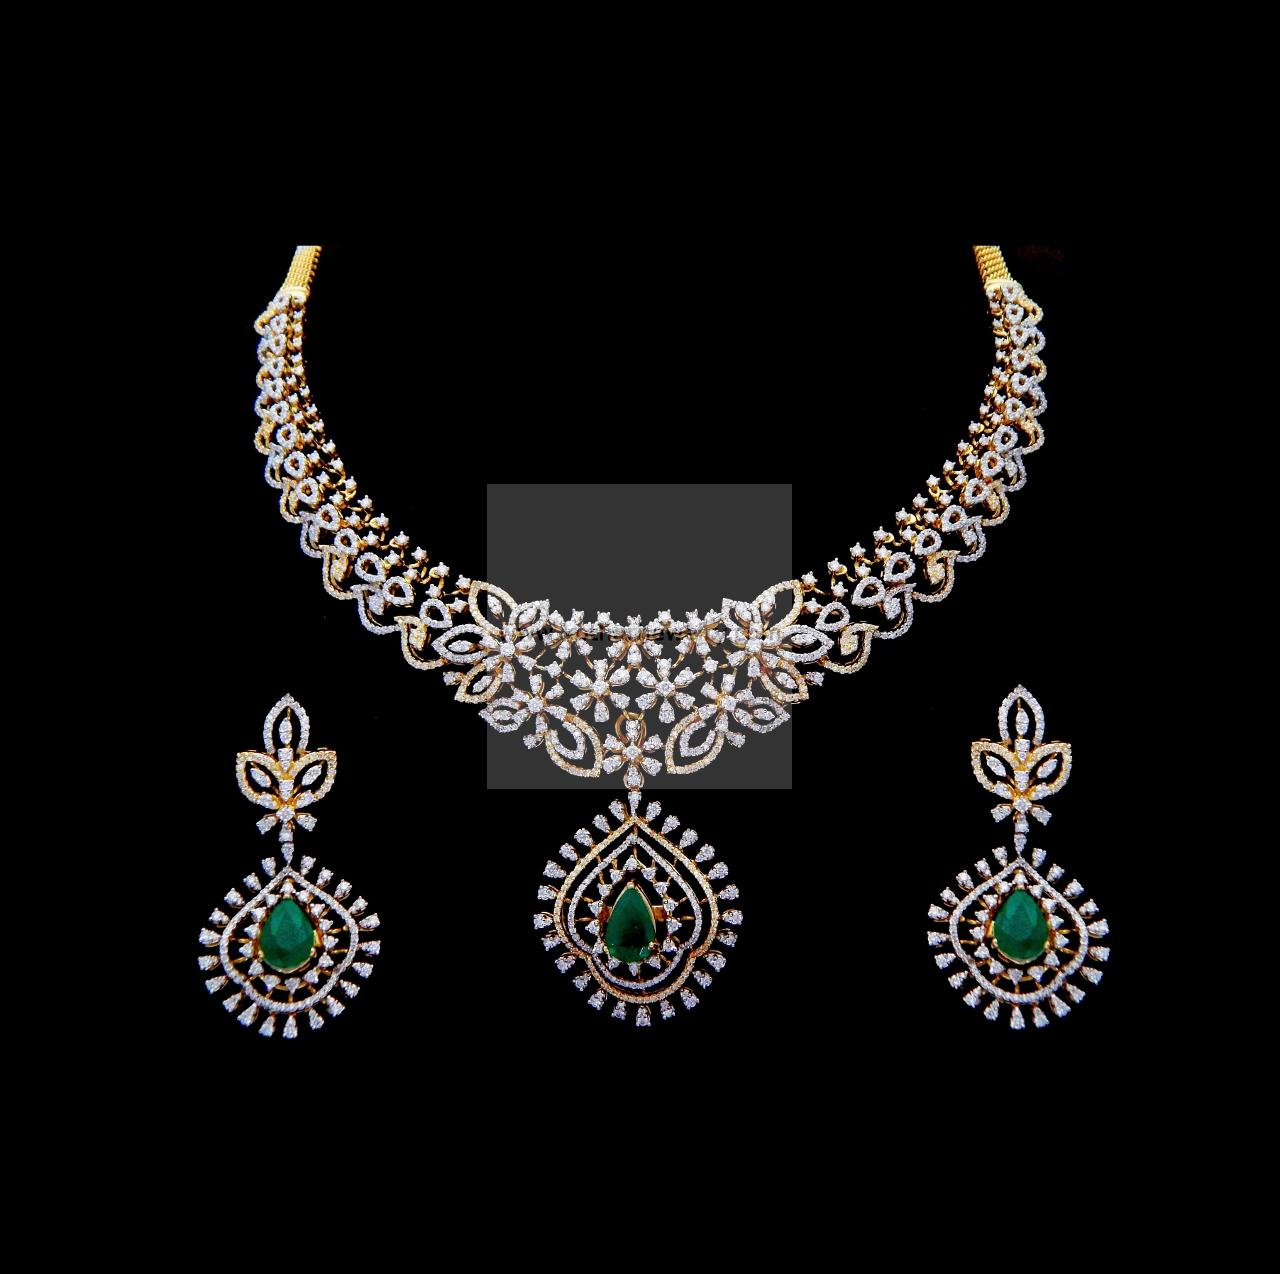 necklacesdiamond designs design necklace rsvgf jewellery indian diamond south